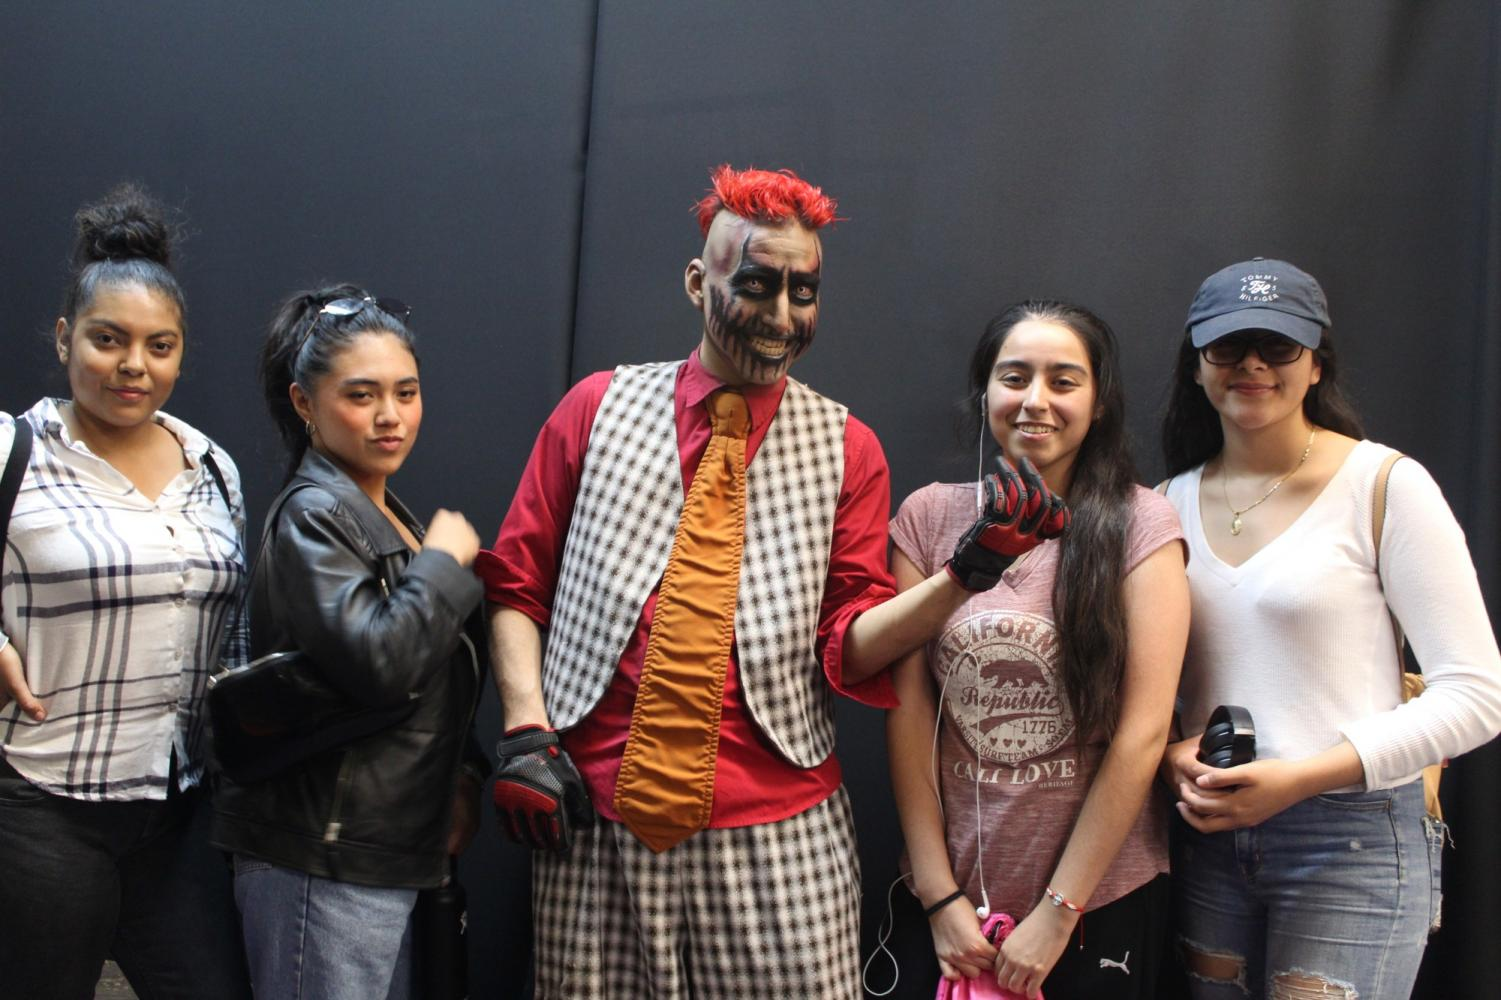 Knotts Scary Farm: Student were given the opportunity to get hands on experience with special makeup artists. Photo credit: Naila Salguero